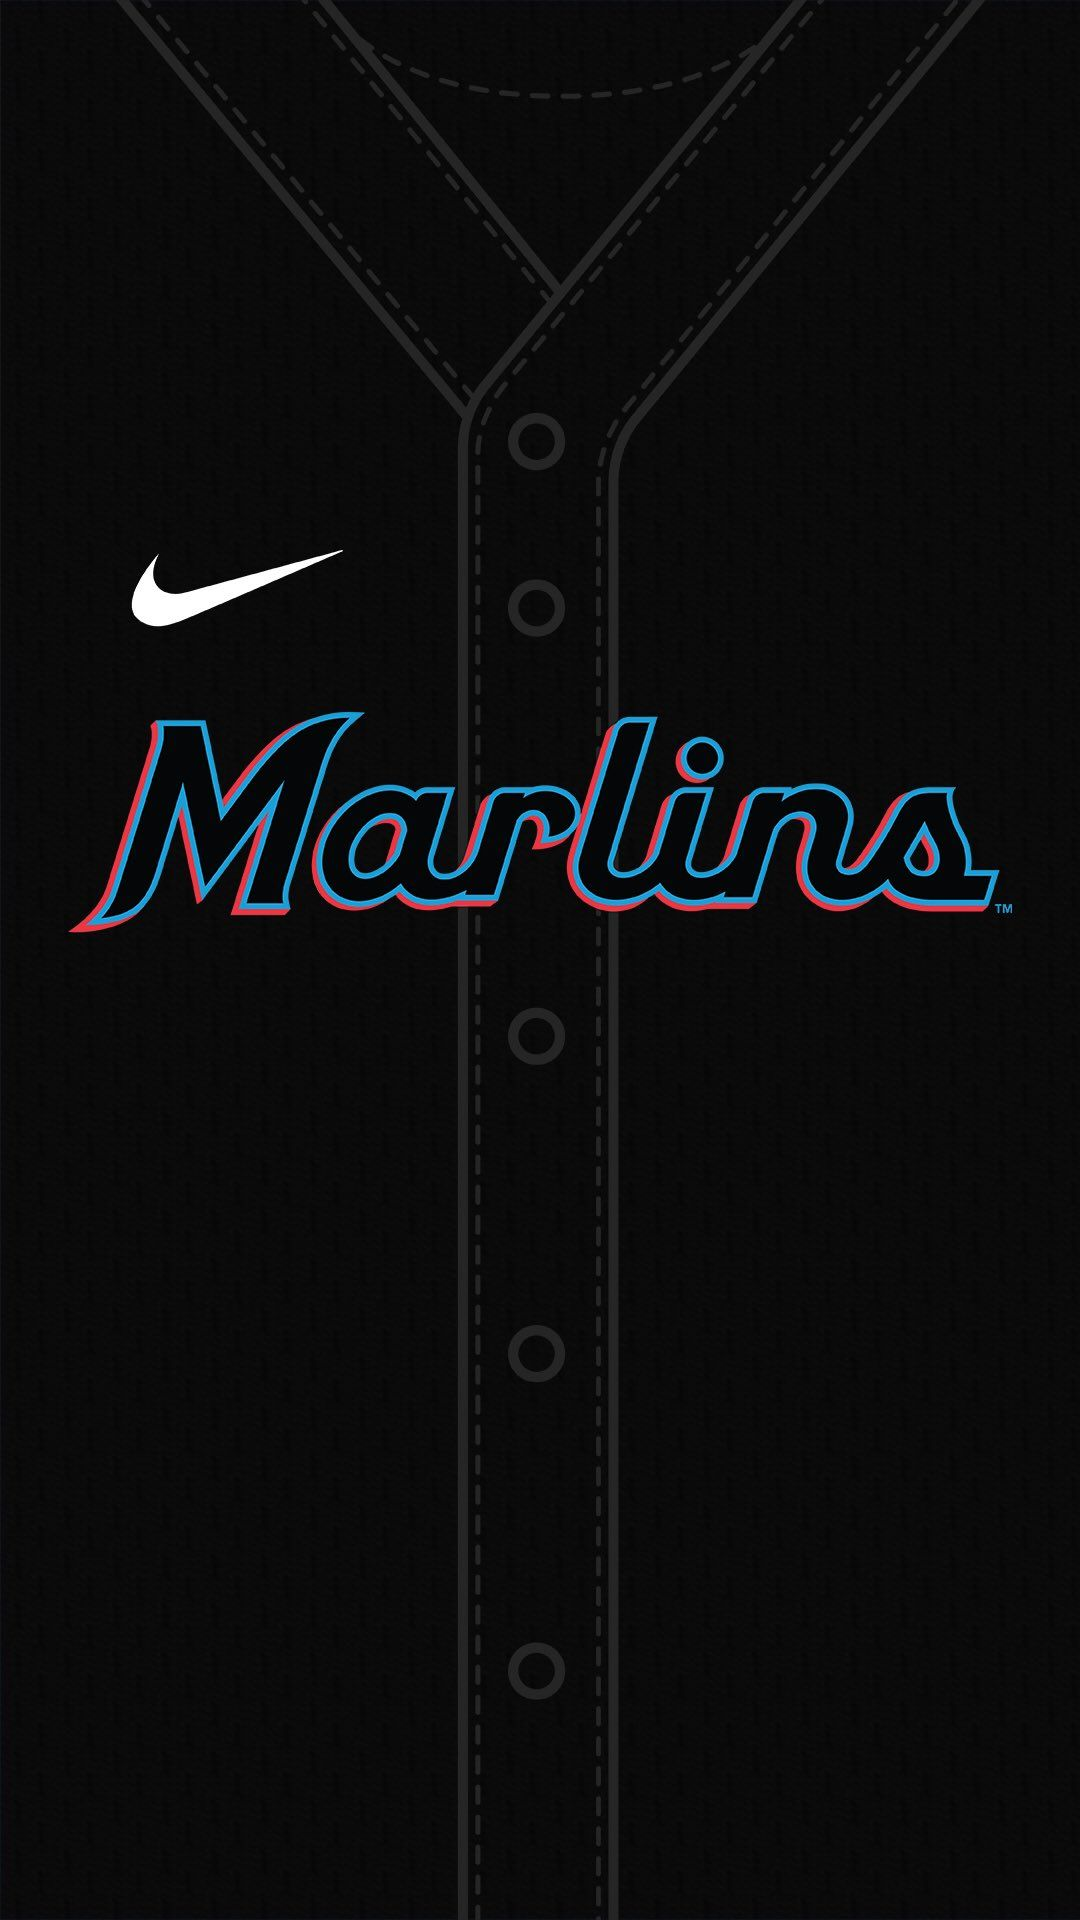 Pin By Tujp On Sports City In Marlins Mlb Logos